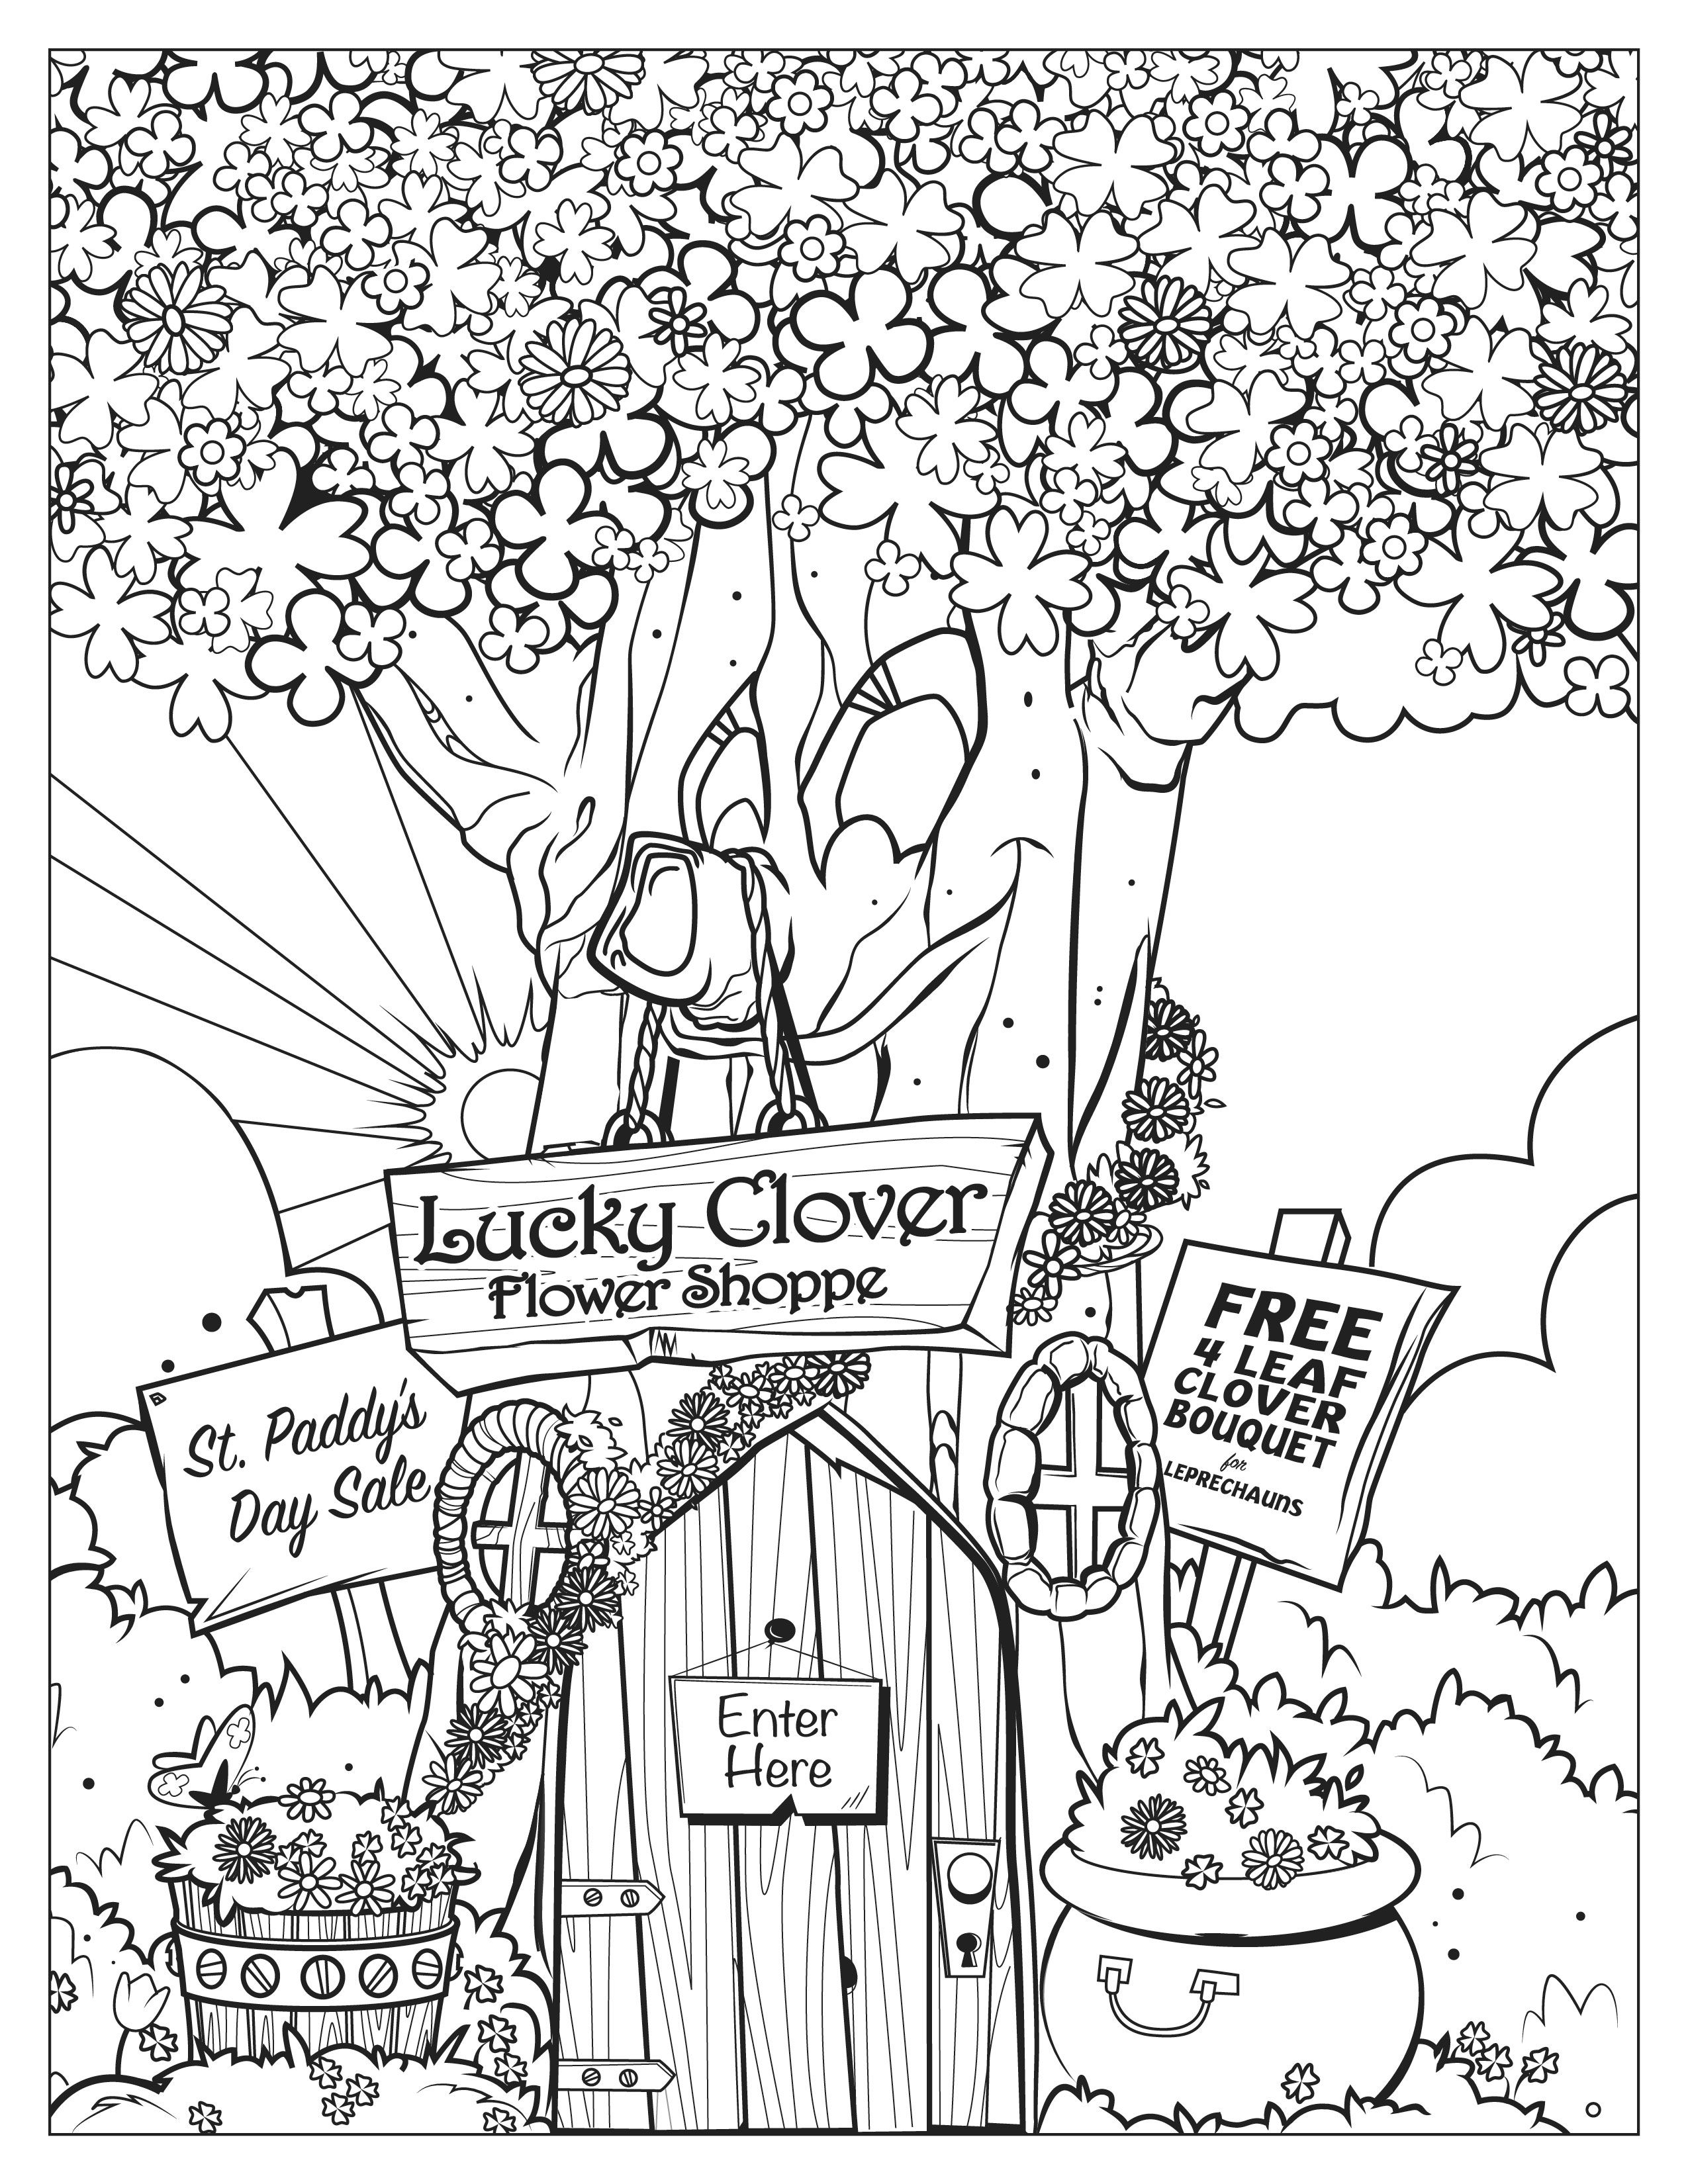 Lucky Charms Flower Shop Coloring Page Coloring Pages Heart For Kids Lucky Charm [ 3300 x 2550 Pixel ]